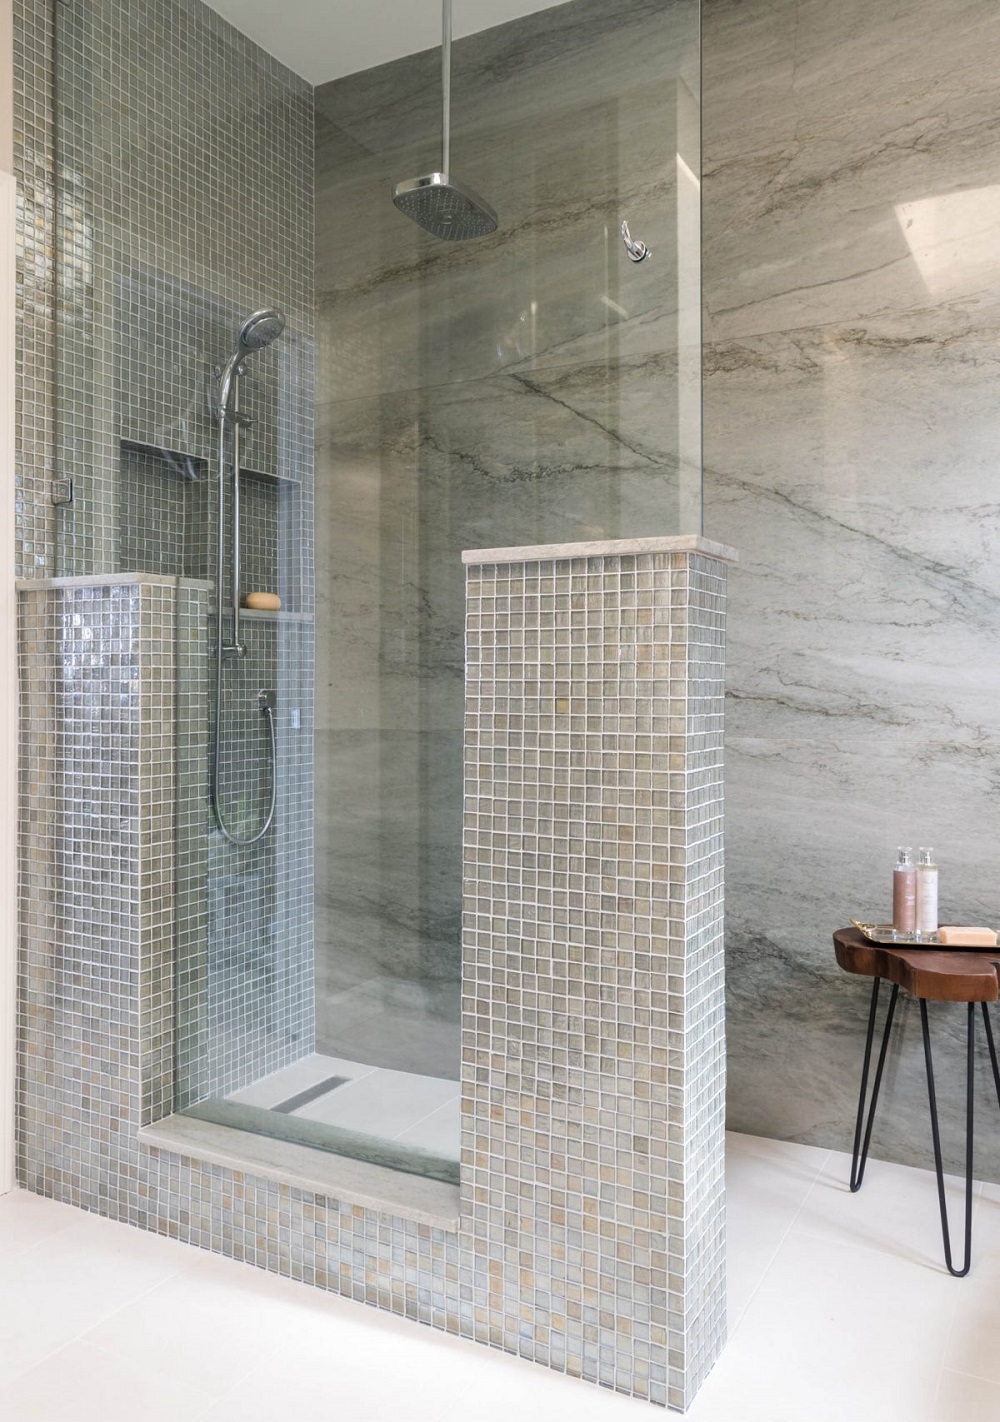 wb6 ideas and tips for walk-in showers (cost, size and more)